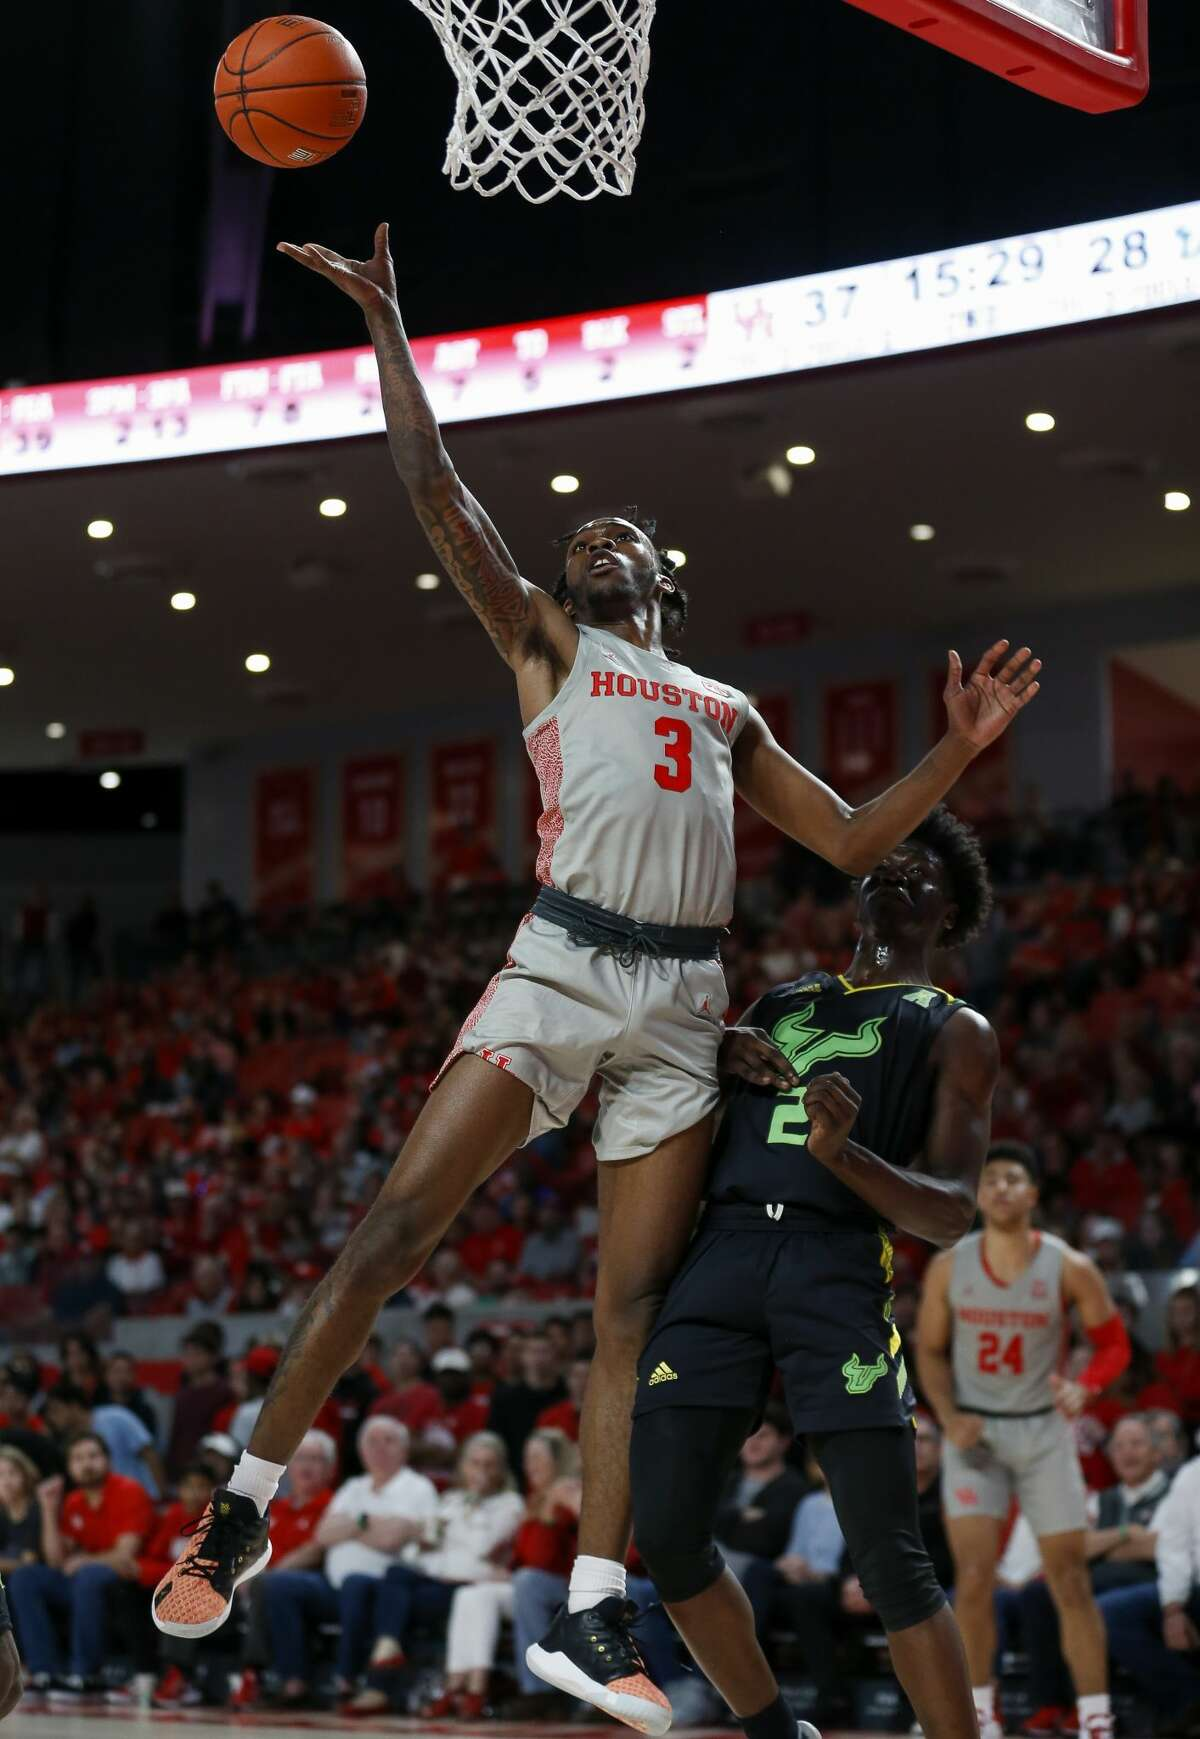 Houston Cougars guard DeJon Jarreau (3) shoots the ball against South Florida Bulls guard Ezacuras Dawson III (2) during the second half of an NCAA game at the Fertitta Center Sunday, Jan. 26, 2020, in Houston. The Cougars won 68-49.